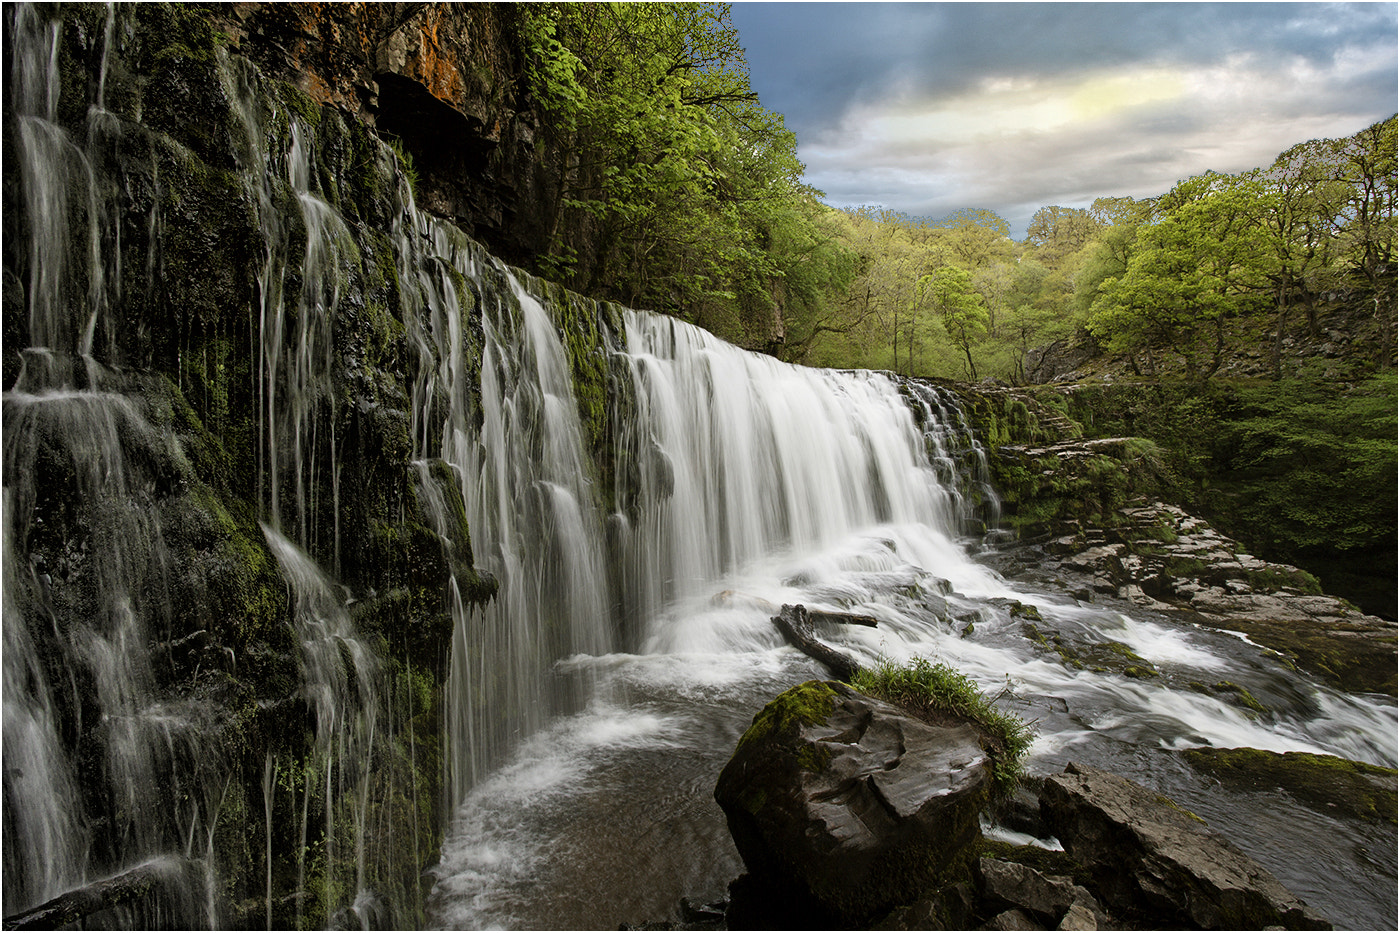 Photograph The Waterfall Country by Alan Coles on 500px